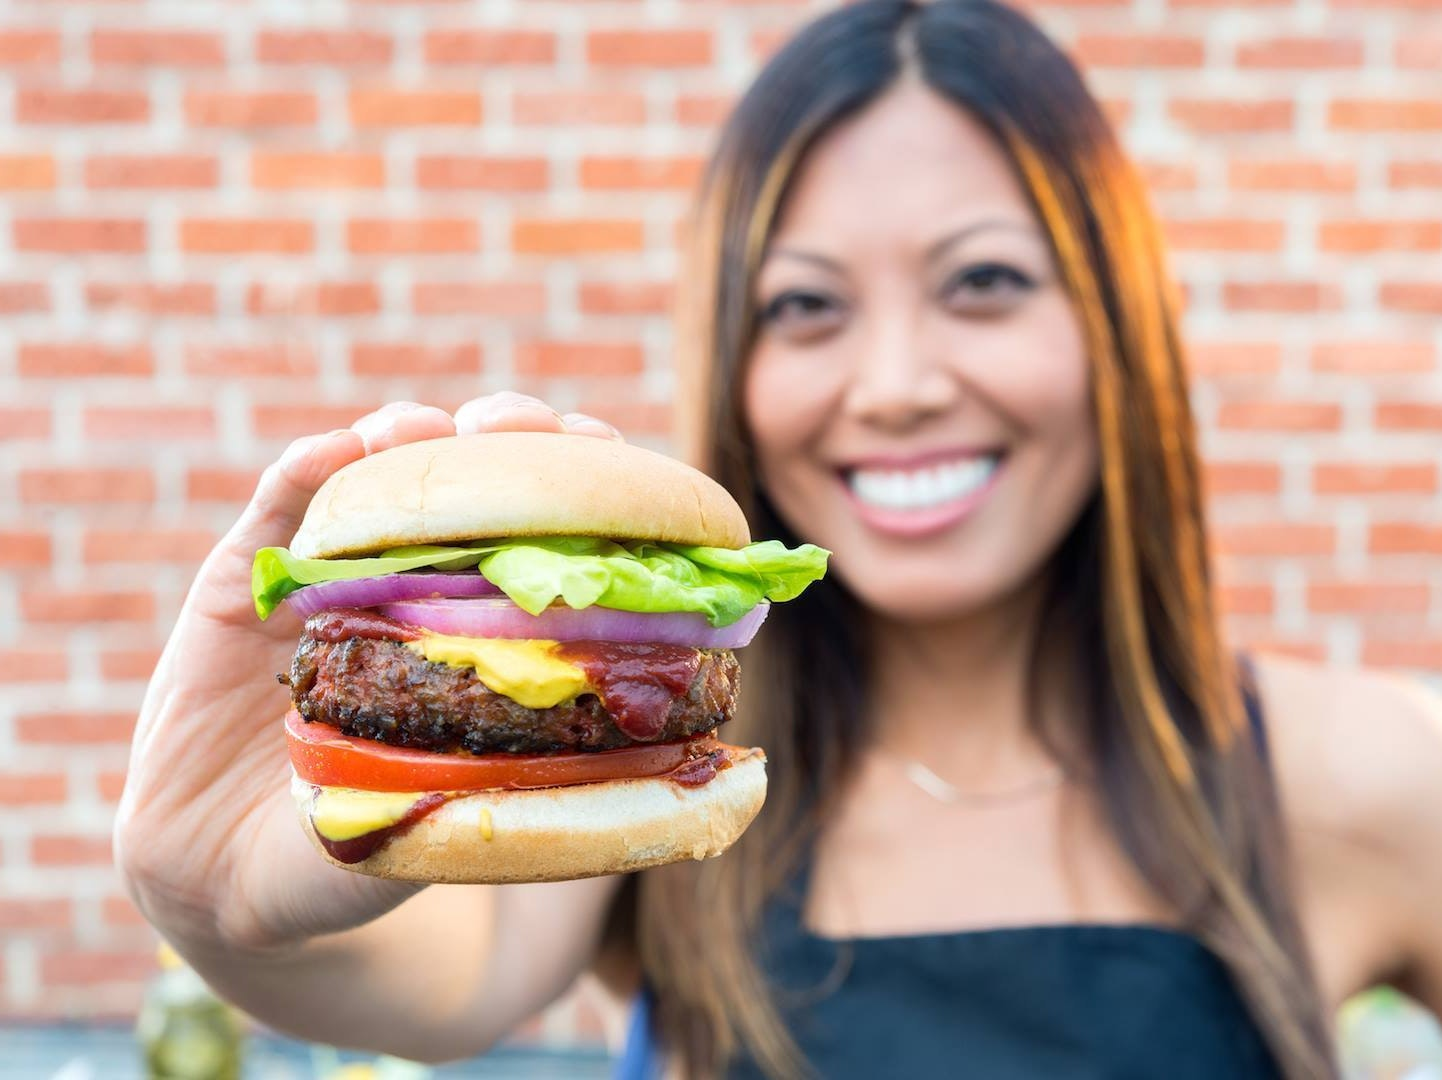 The Future of Fake Meat Just Got an Unlikely Investor